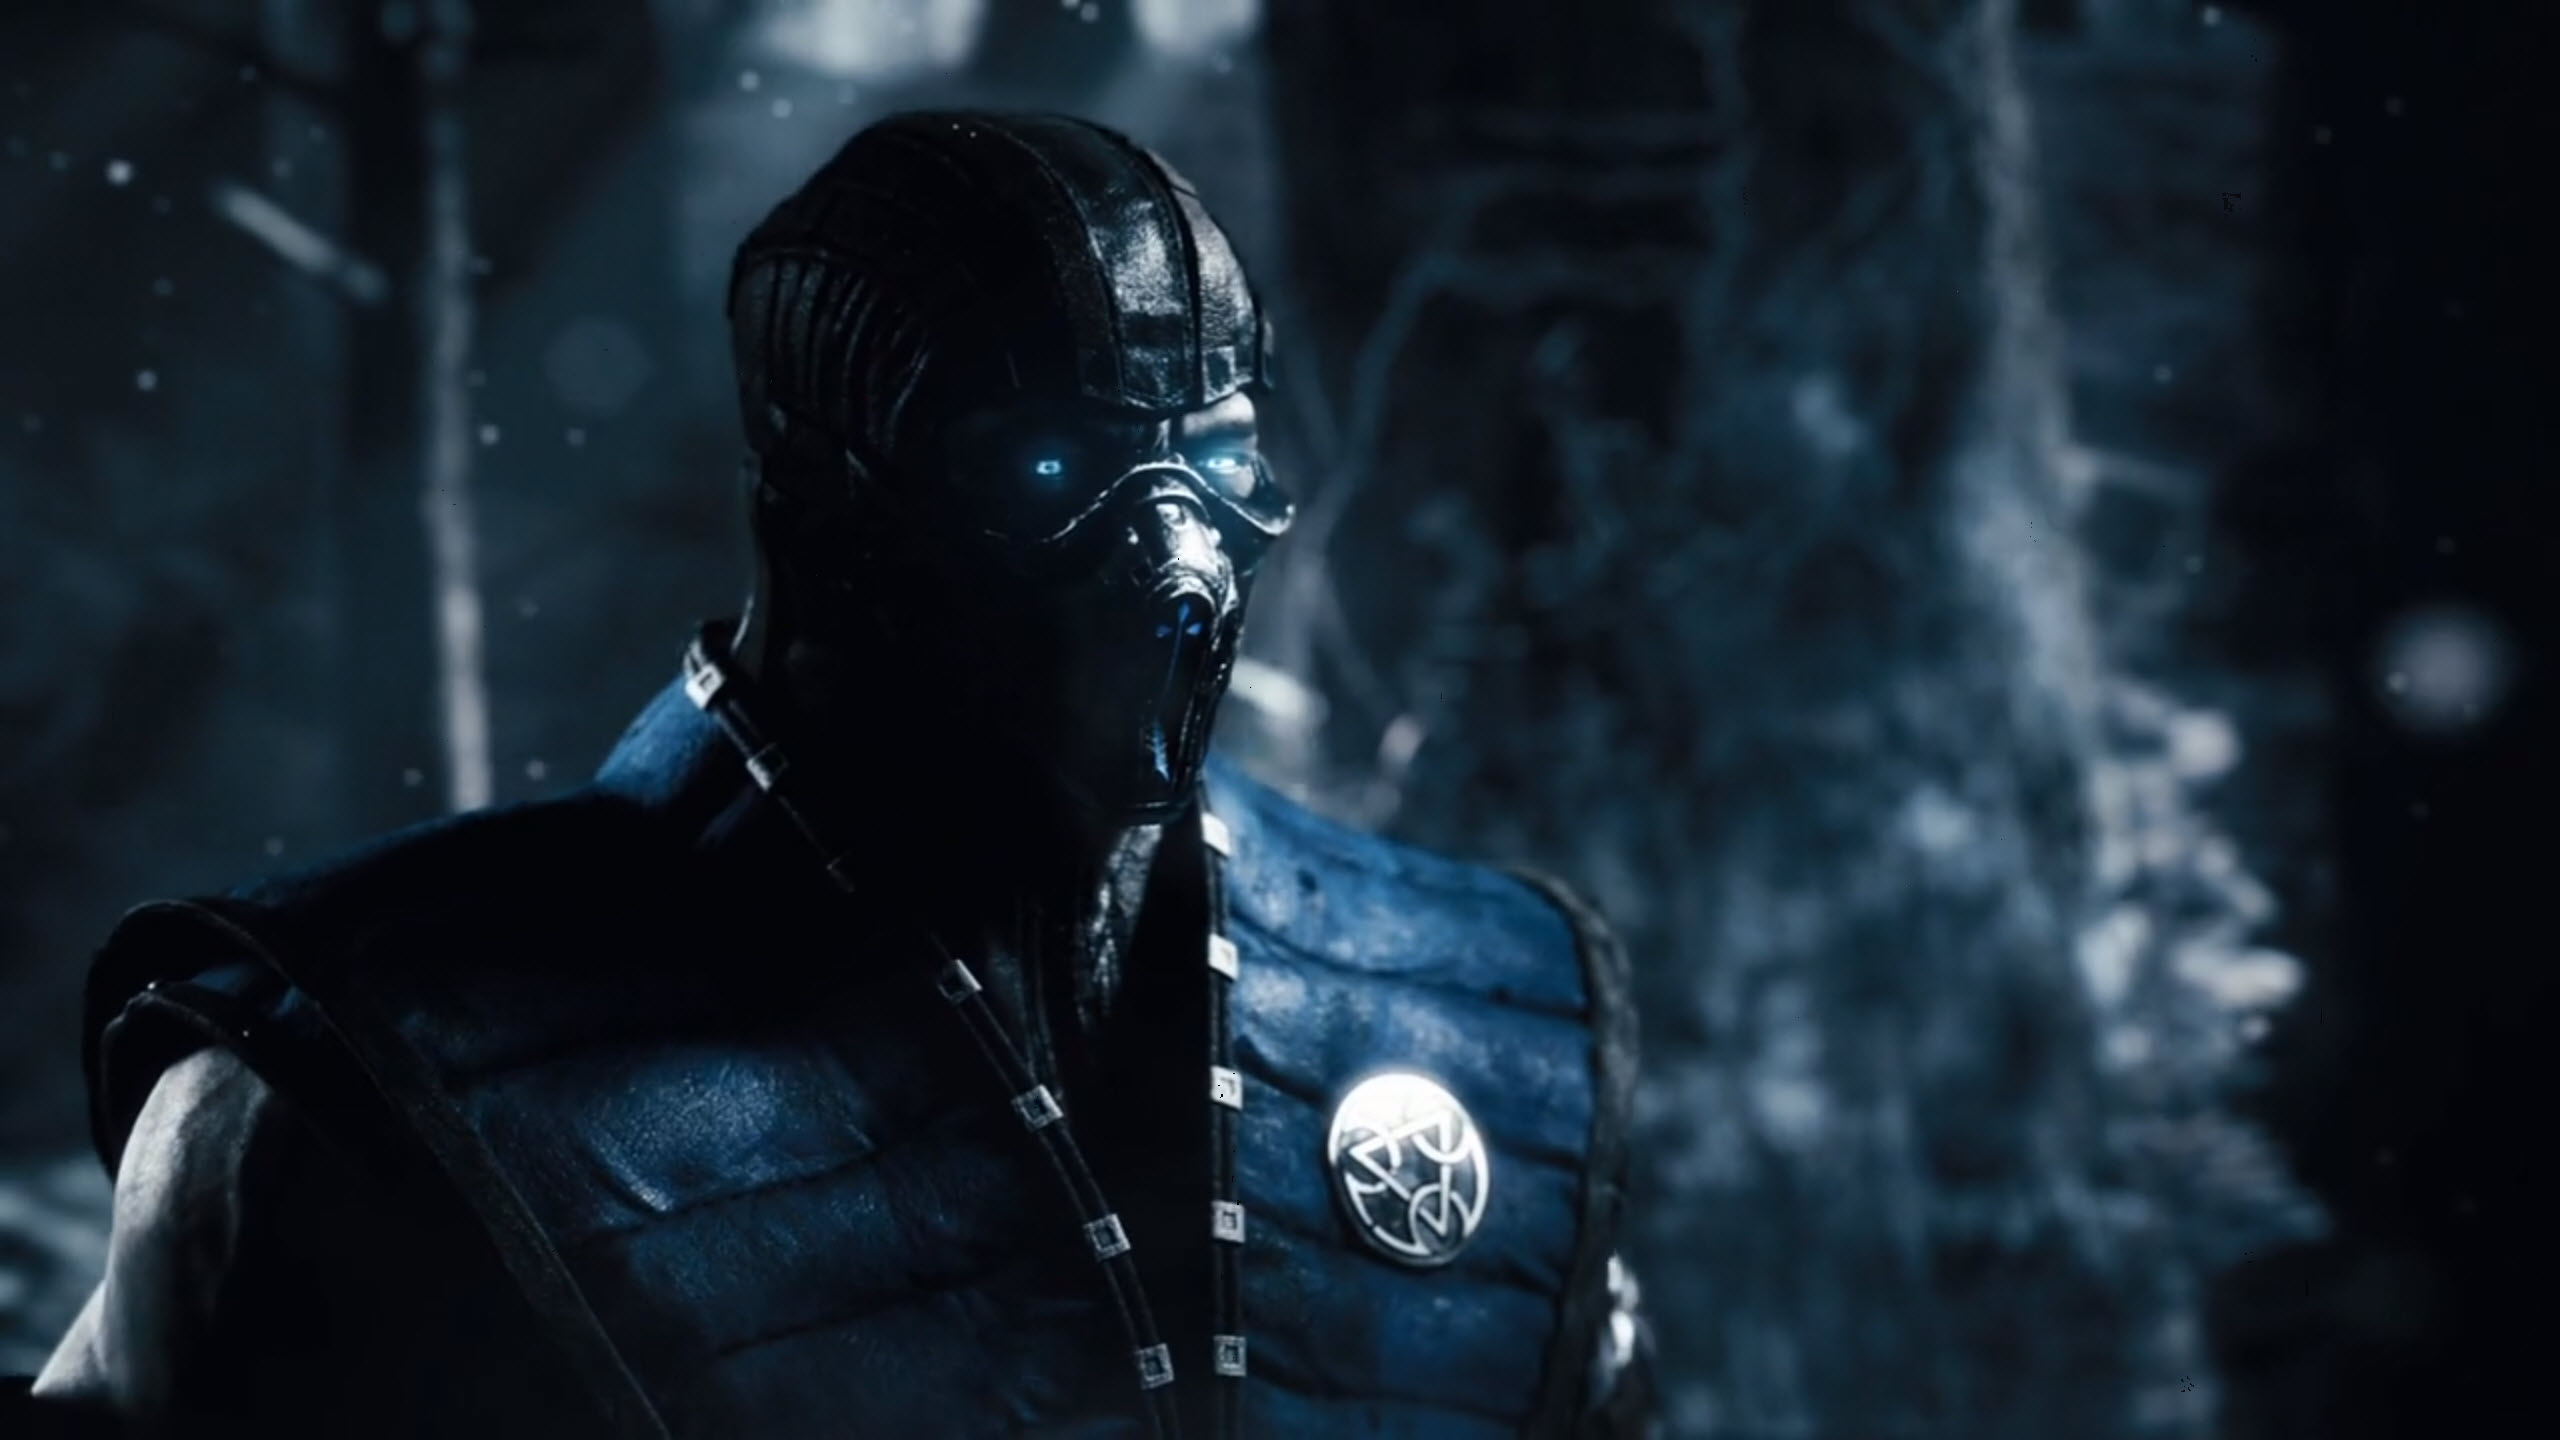 Mortal Kombat X HD Wallpapers For Desktop Download